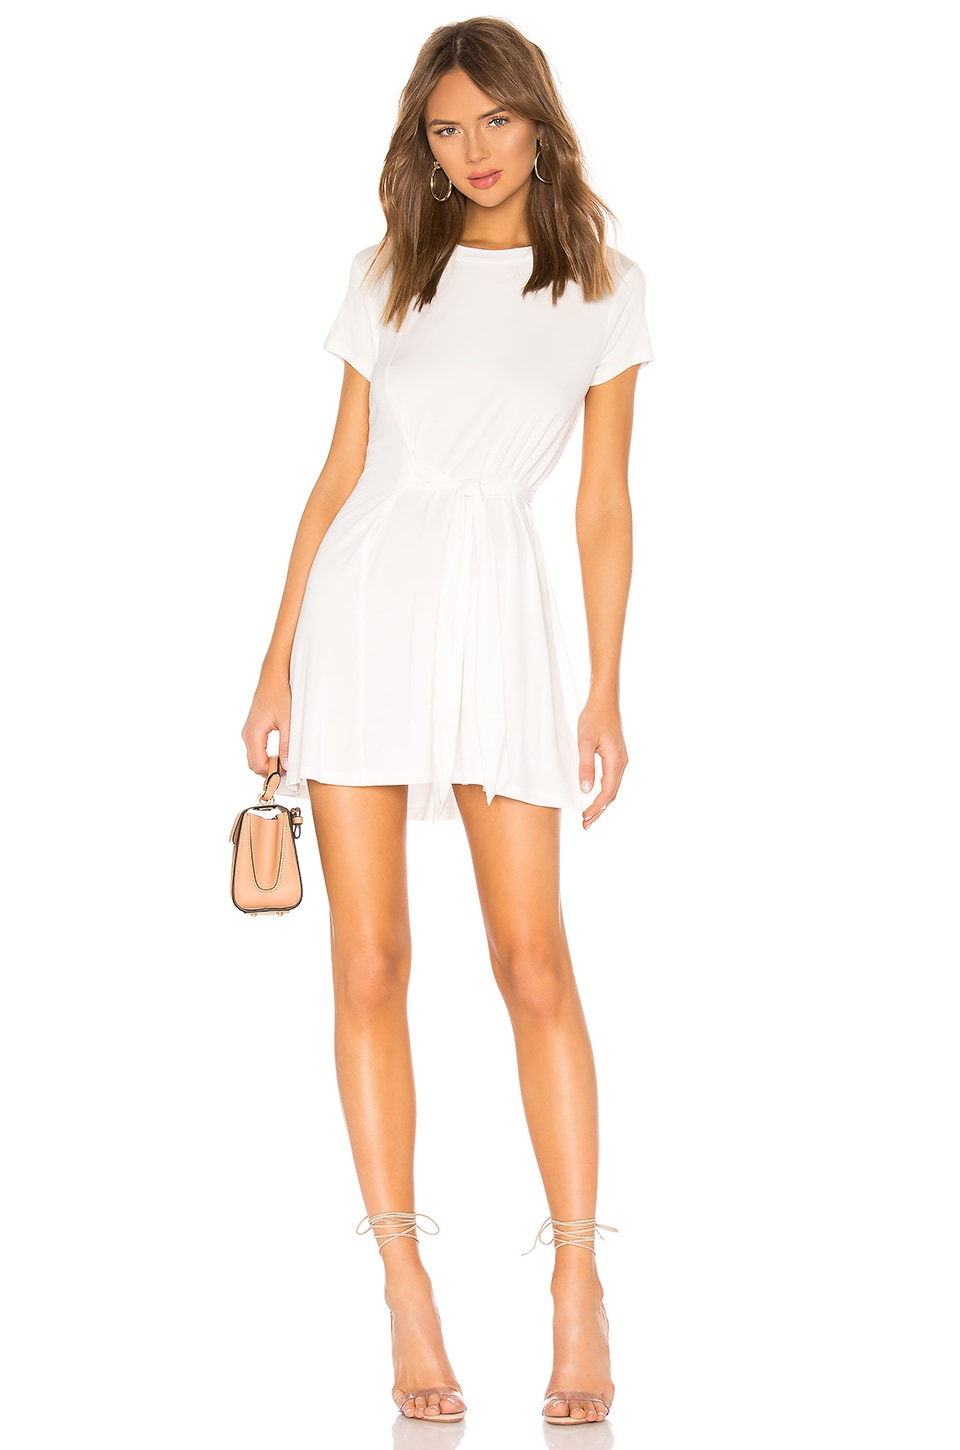 L'Academie Cassidy Dress in Ivory